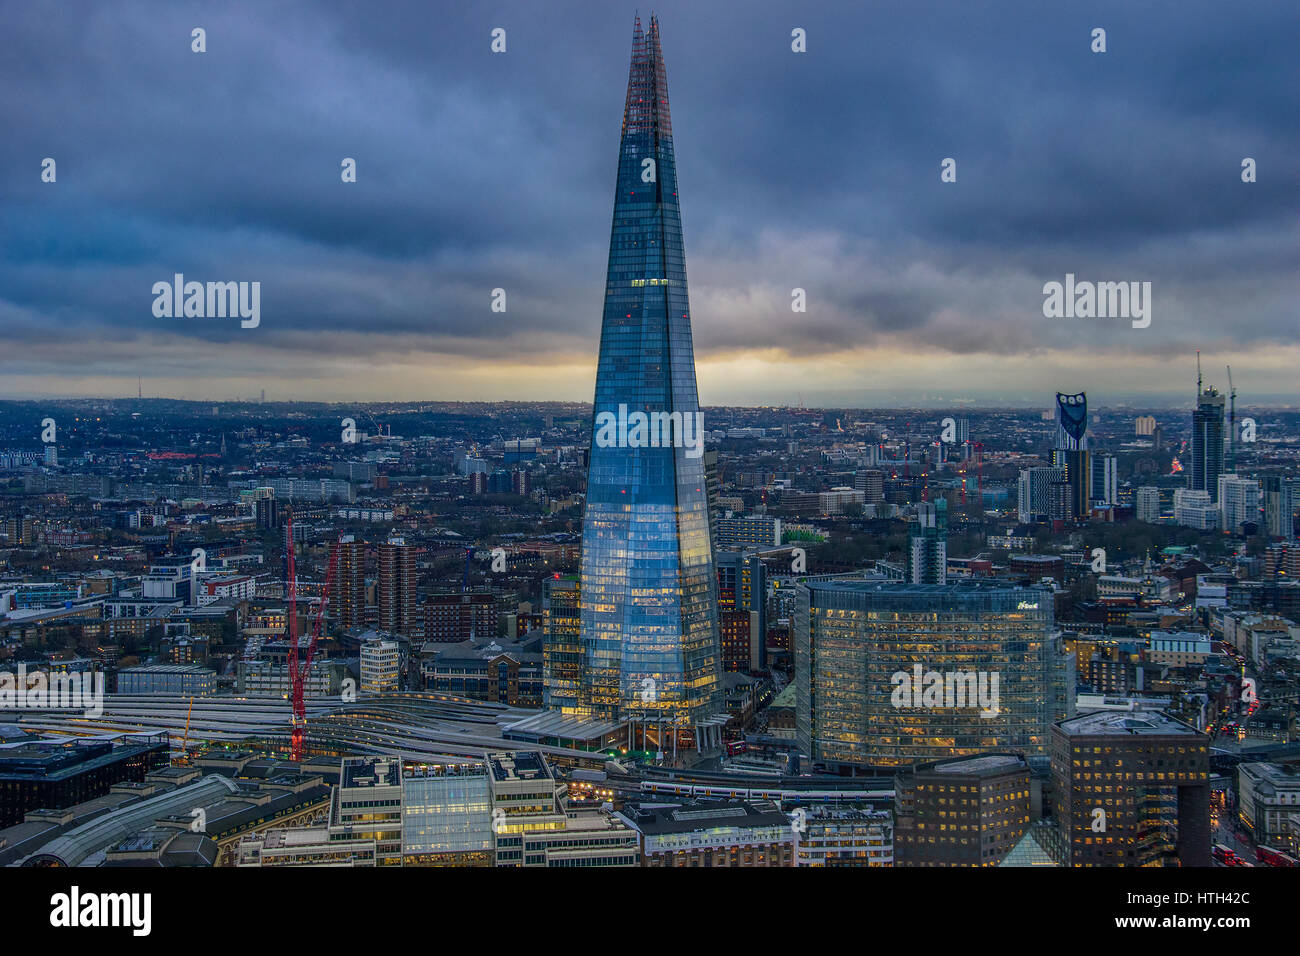 Panoramic aerial view of urban London with the Shard skyscraper and Thames river at sunset against a cloudy sky. Stock Photo